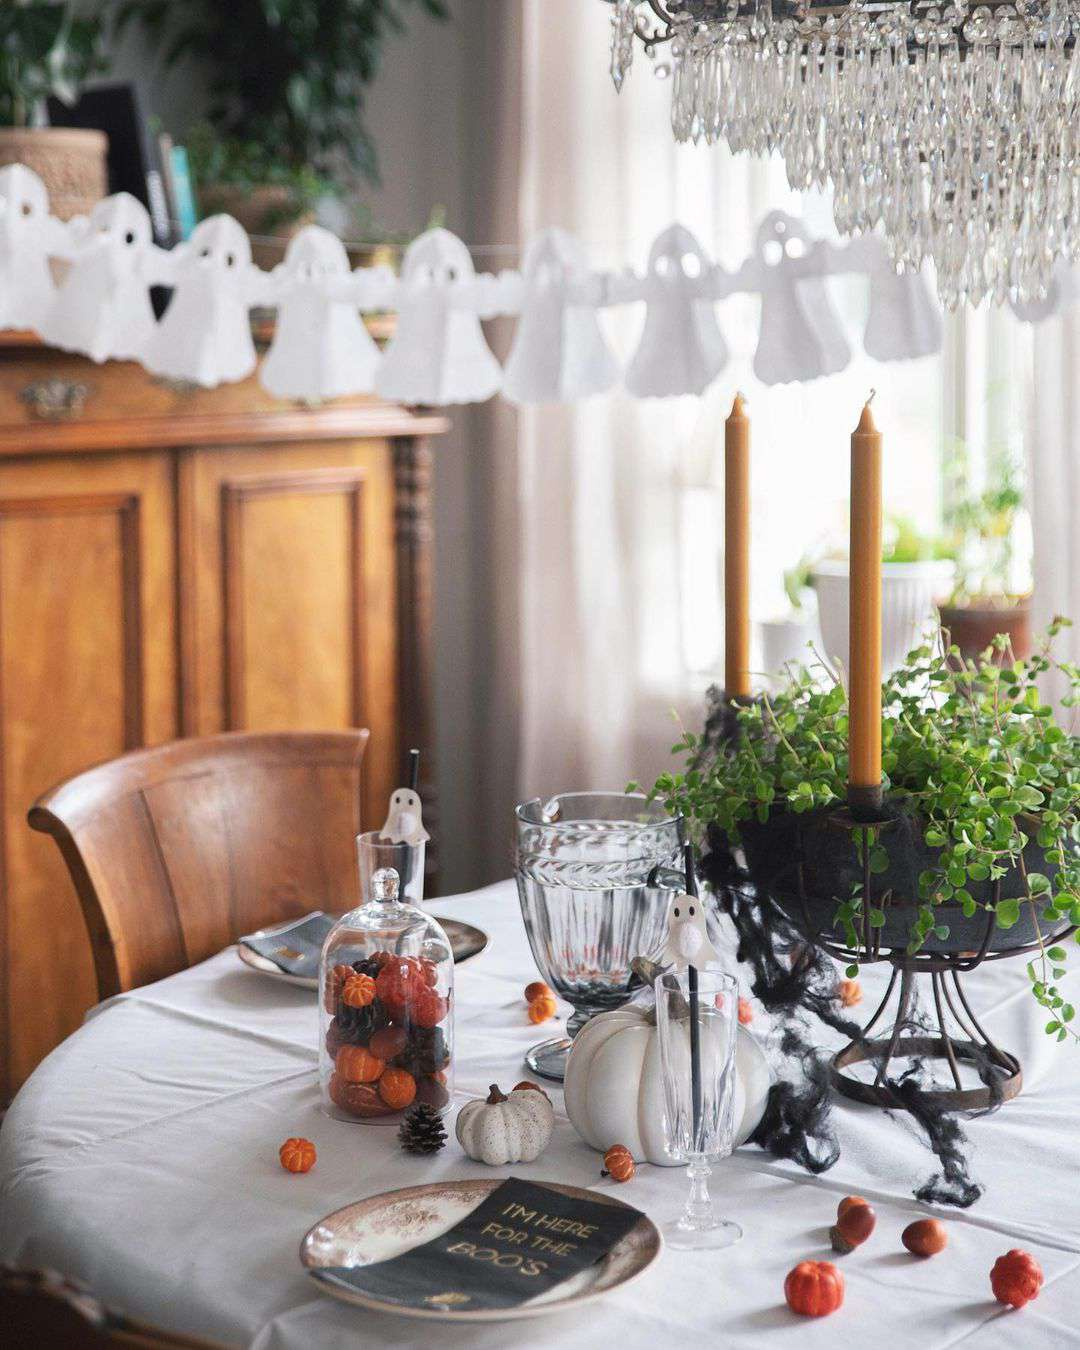 Dining table with paper ghosts